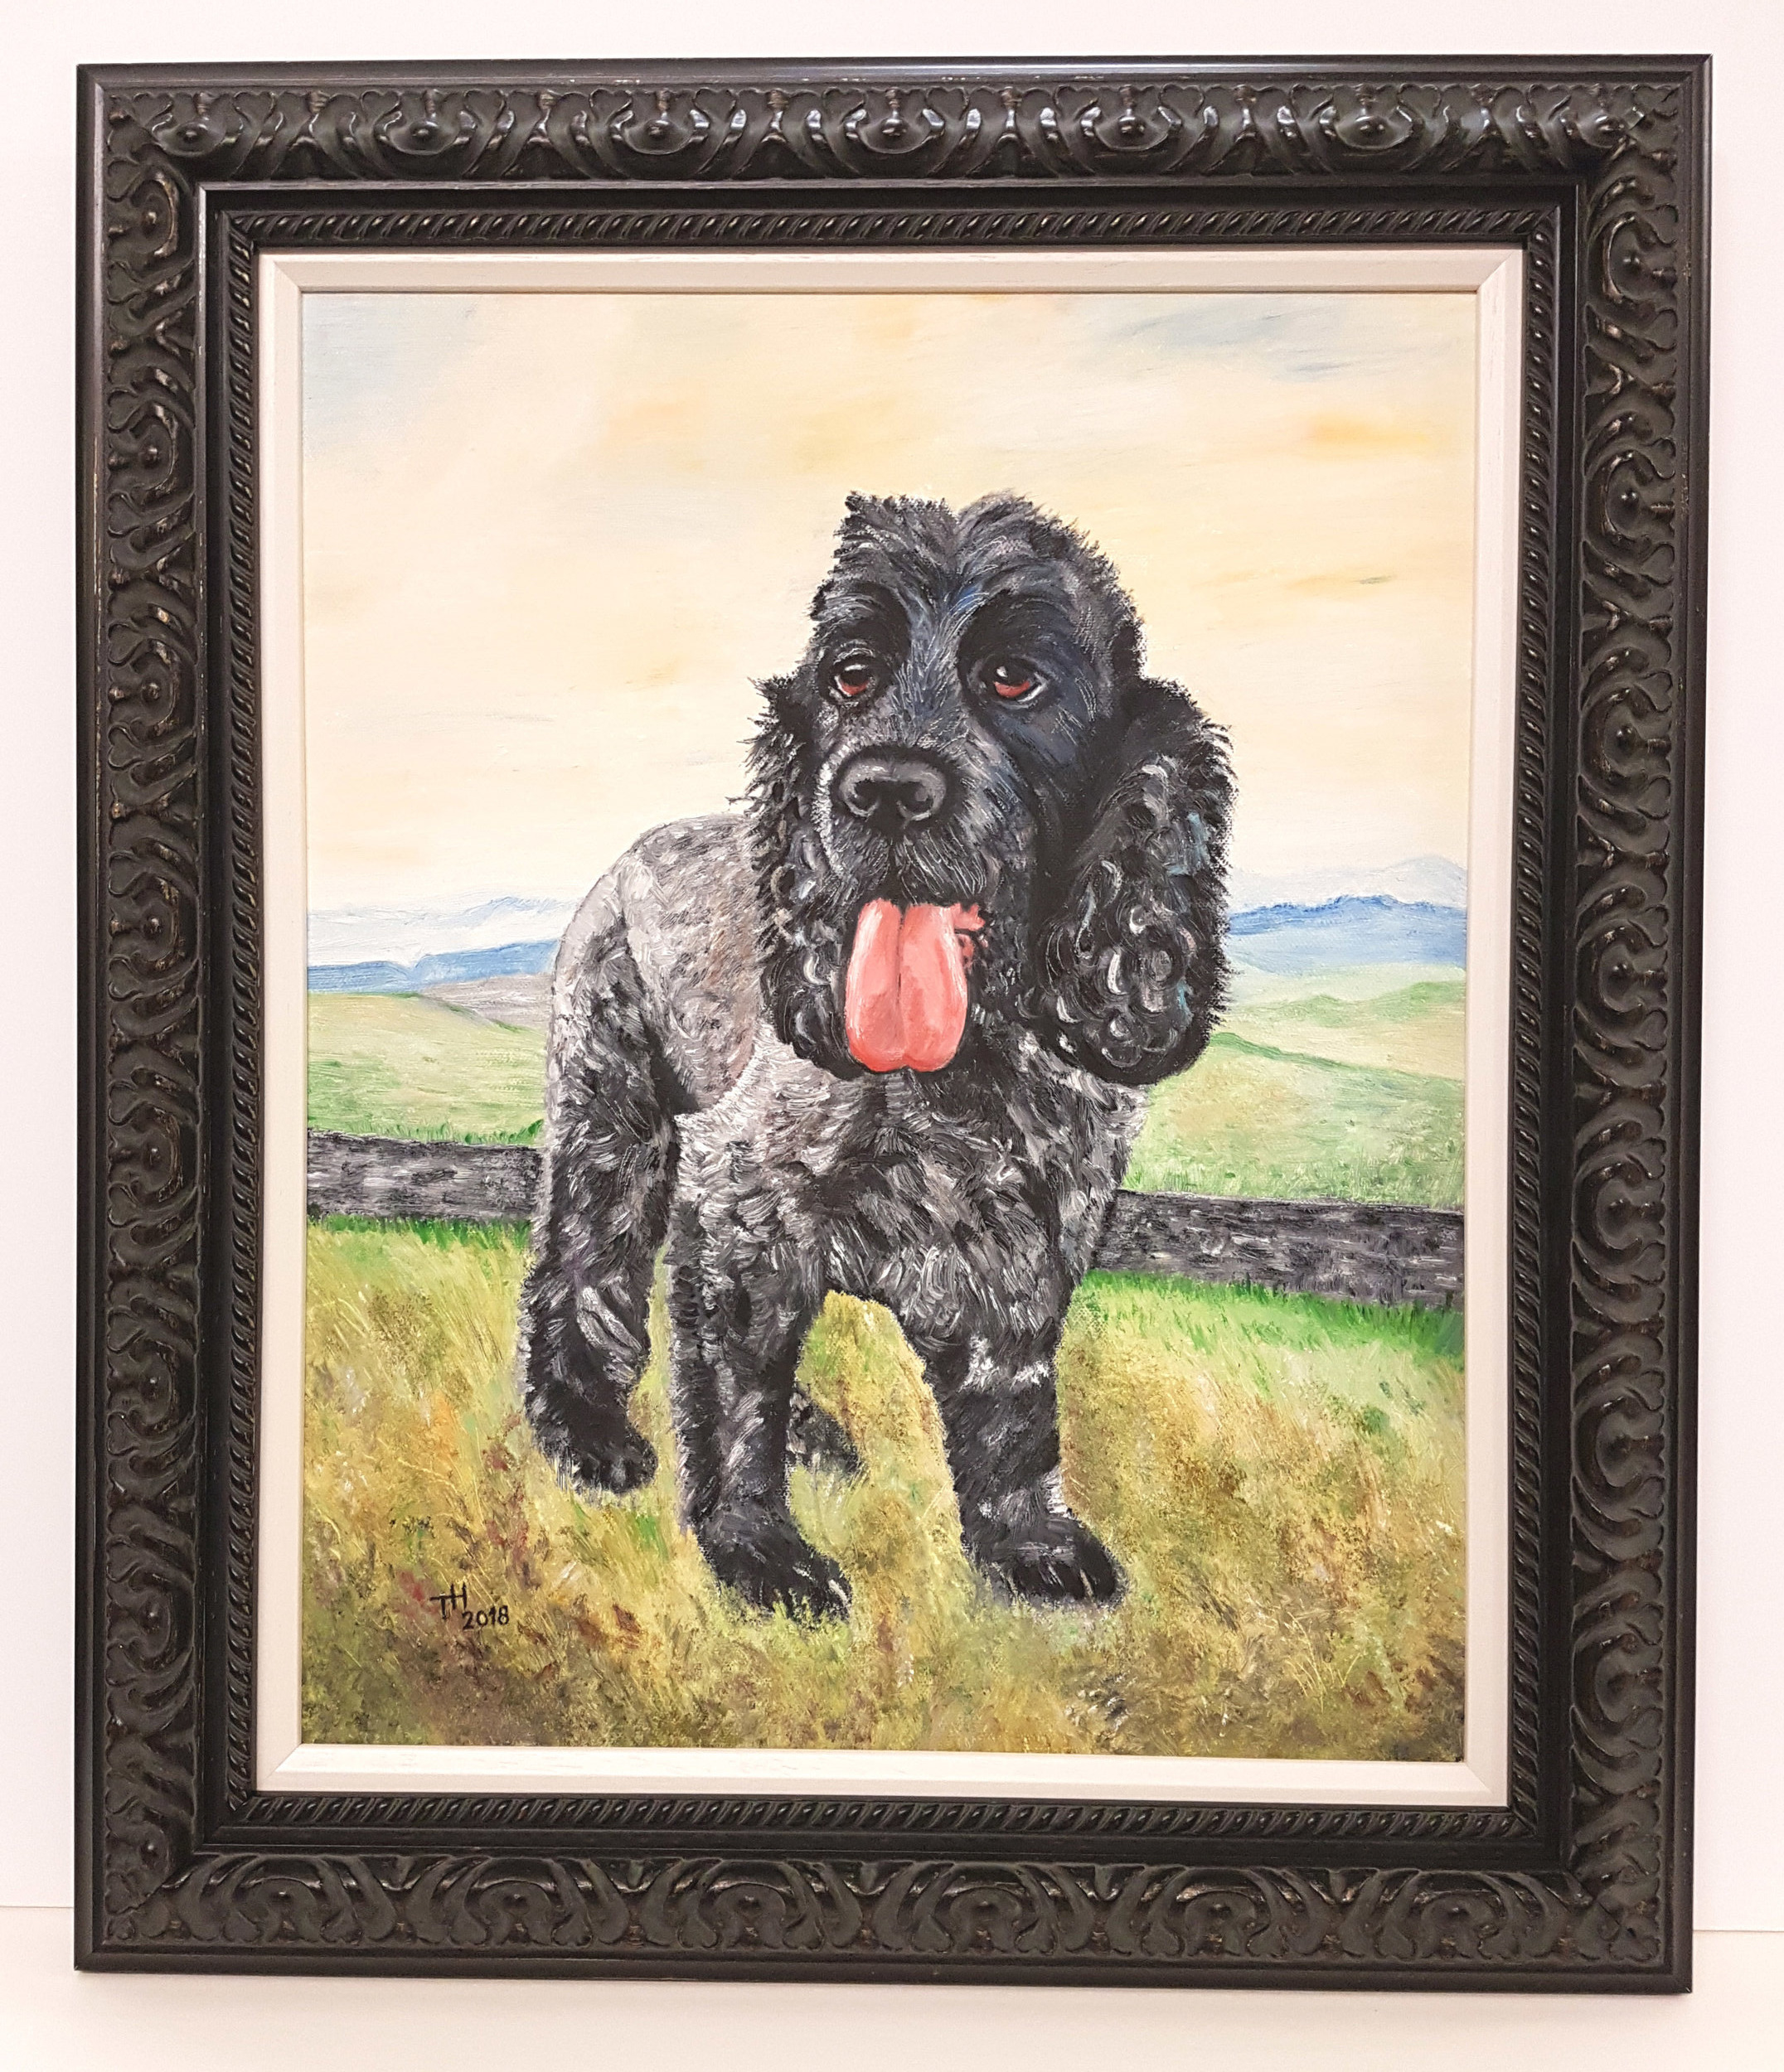 An oil painting done from a photograph and framed in an ornate charcoal frame with an inner slip that seperates the moulding from the canvas